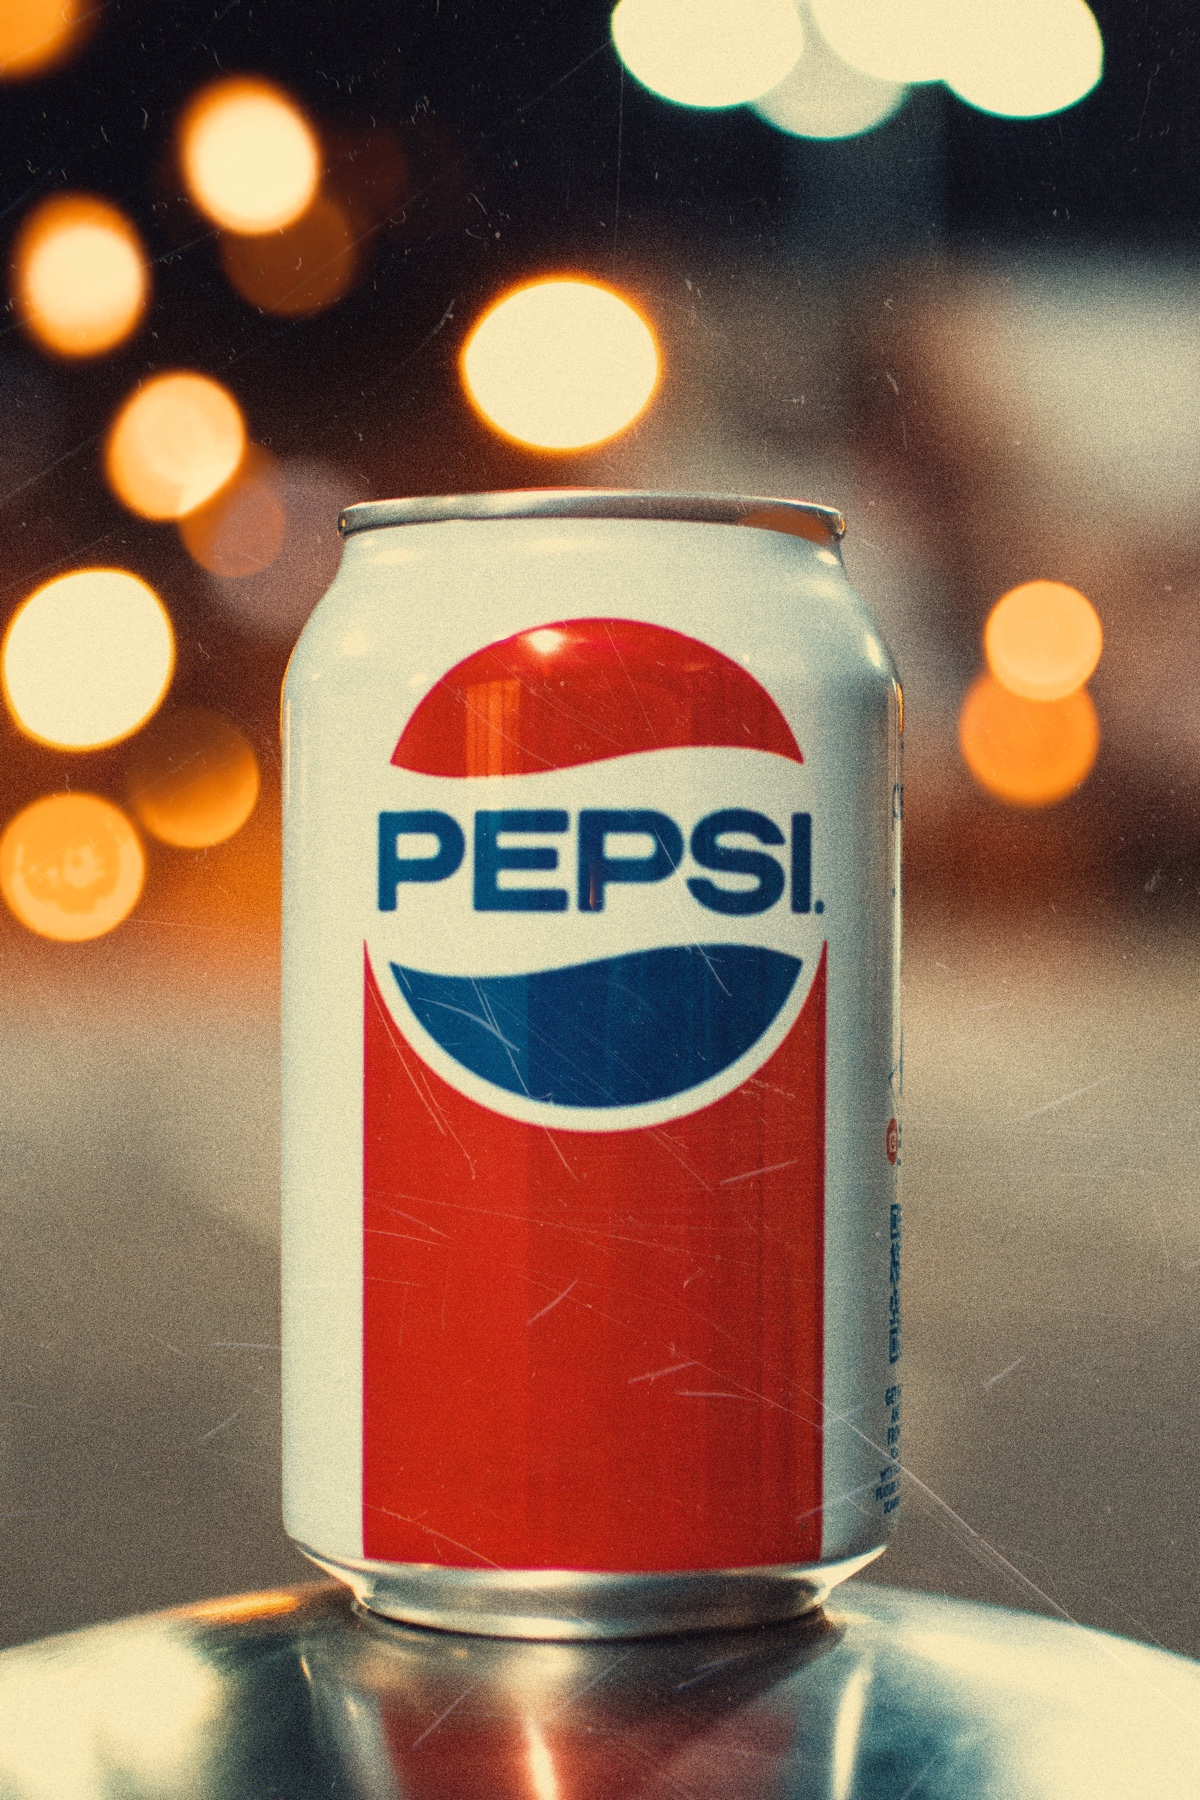 The 5 Things To Learn from Pepsi's Scripted Authenticity Brand Disaster